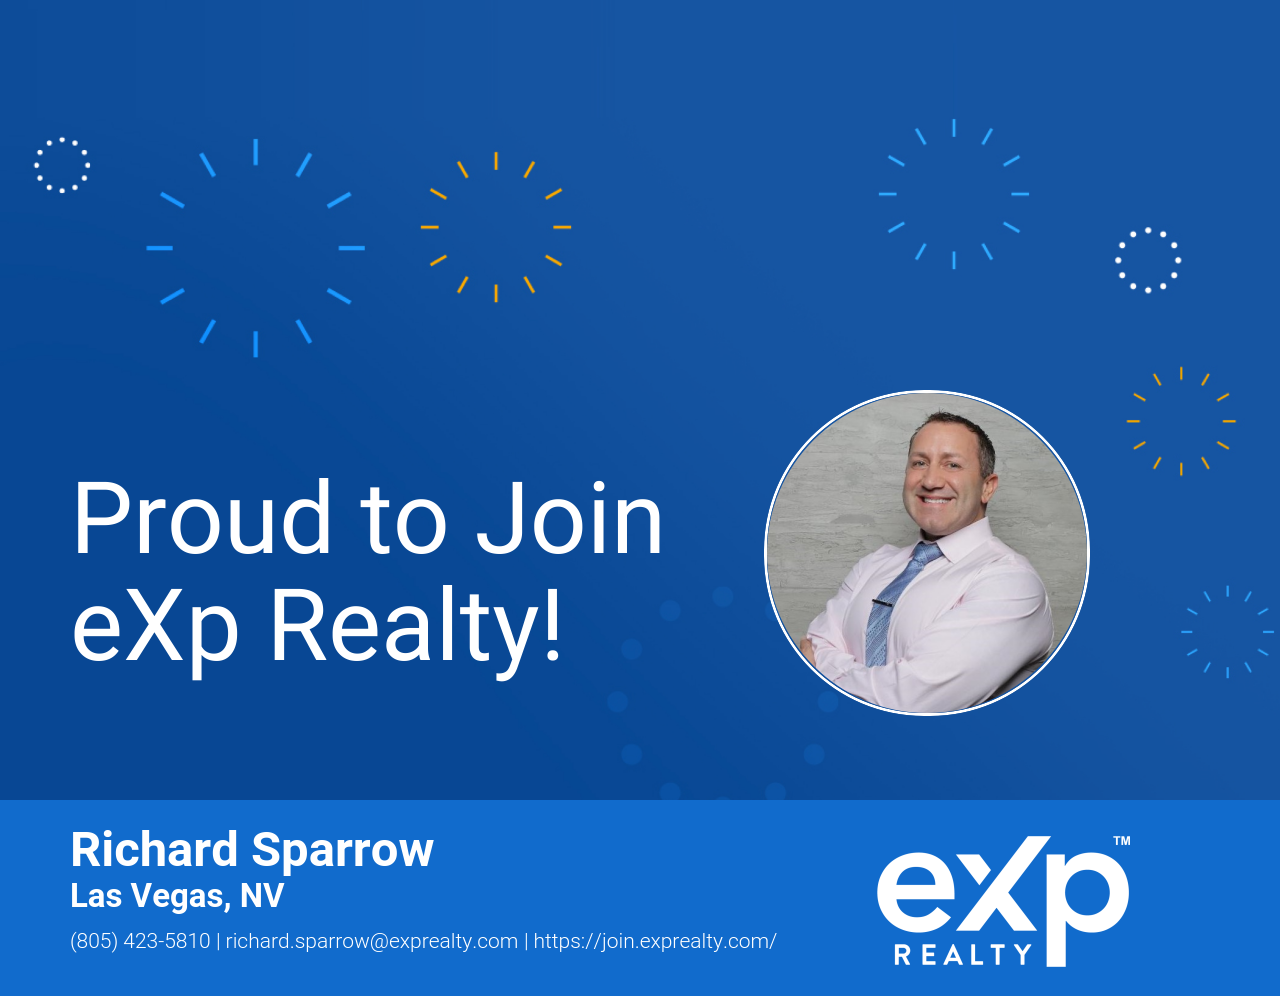 Richard Sparrow Joined eXp Realty!